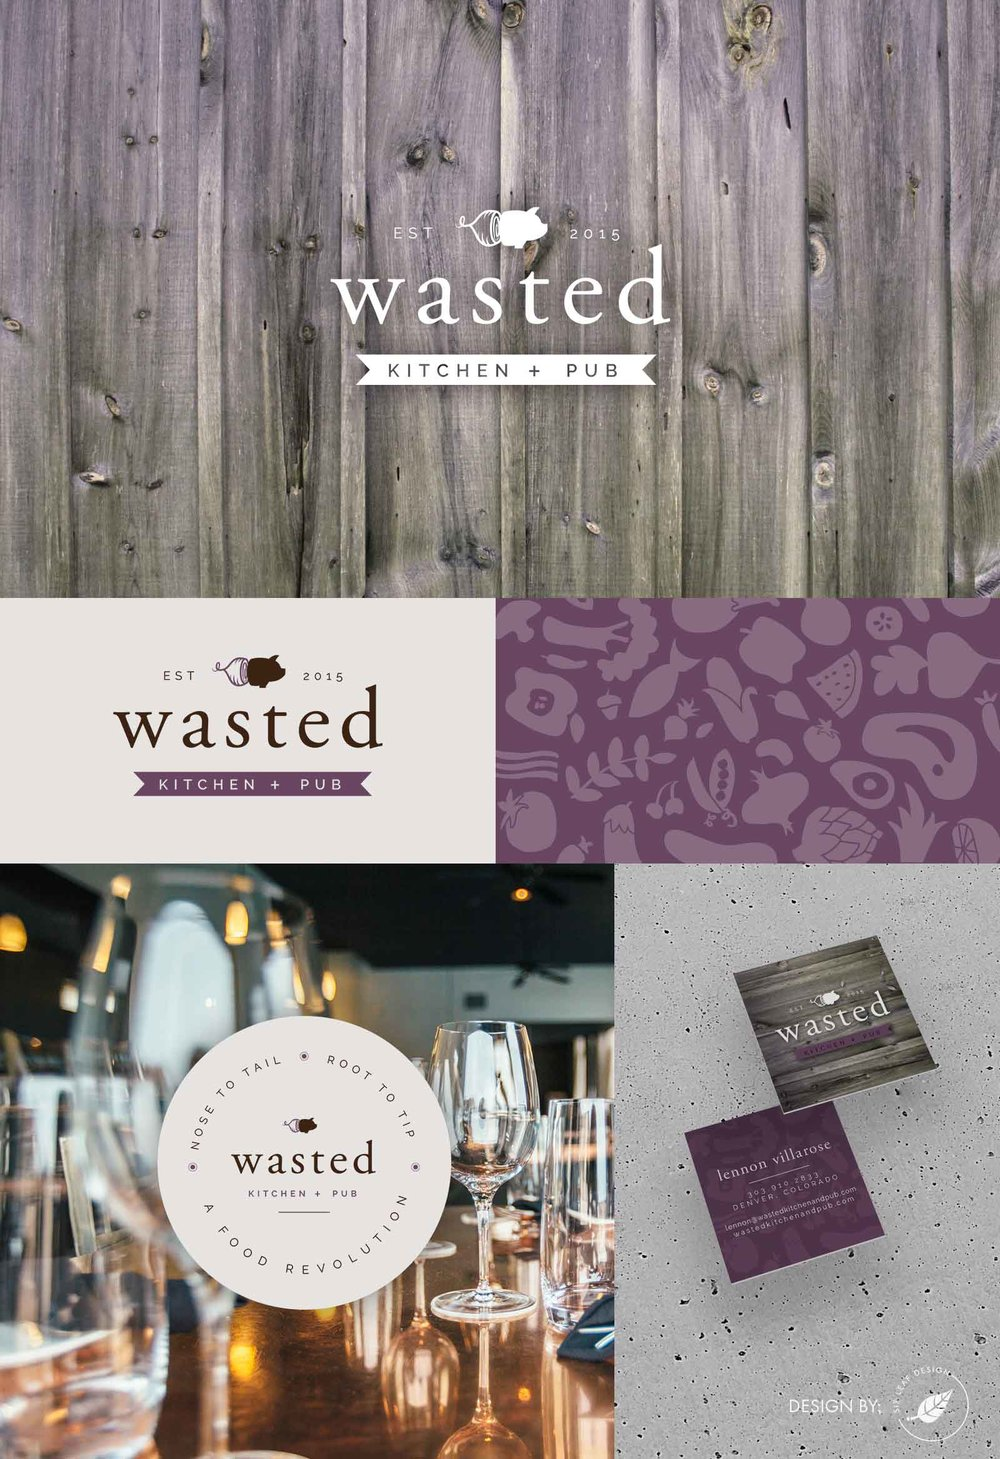 Restaurant Logo, Branding, and Business Card Design for Wasted Kitchen + Pub featuring Pig and Beet Icon, Wood Texture, and Custom Food Background Pattern with Brown and Purple Color Palette